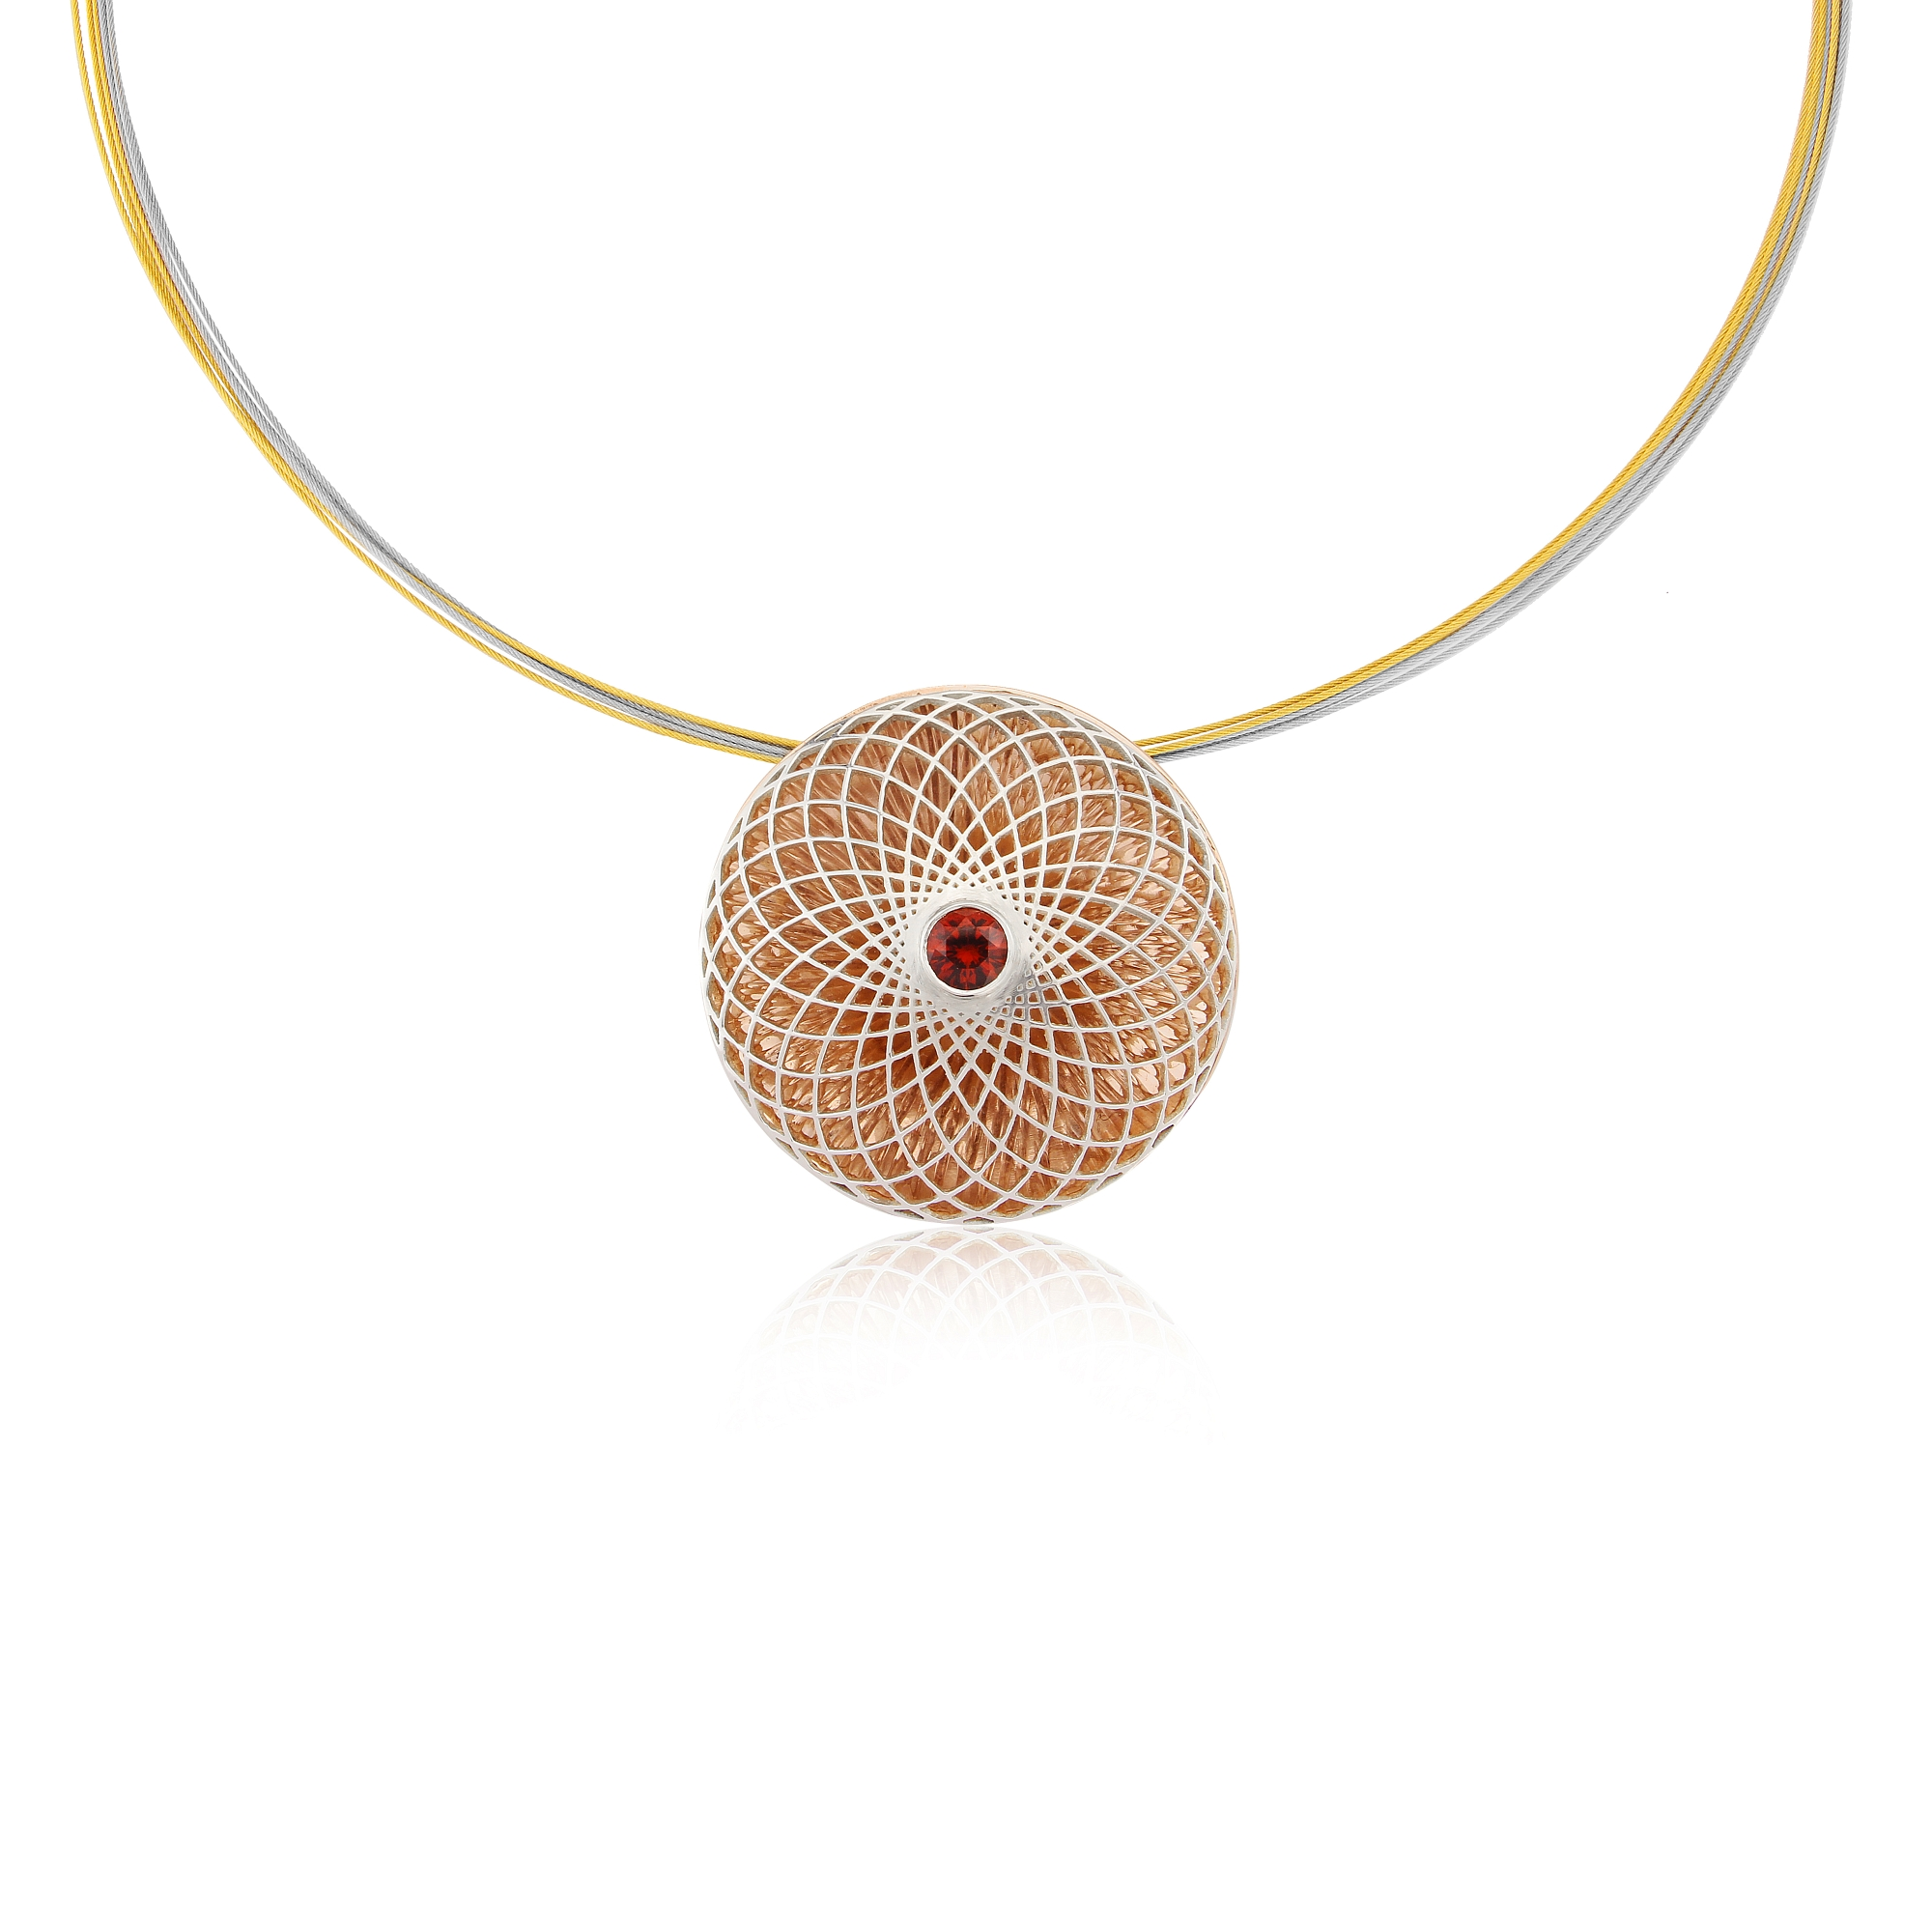 Second spiro pendant featuring a diamond cut garnet all made in 935 quality silver with gold vermeil back